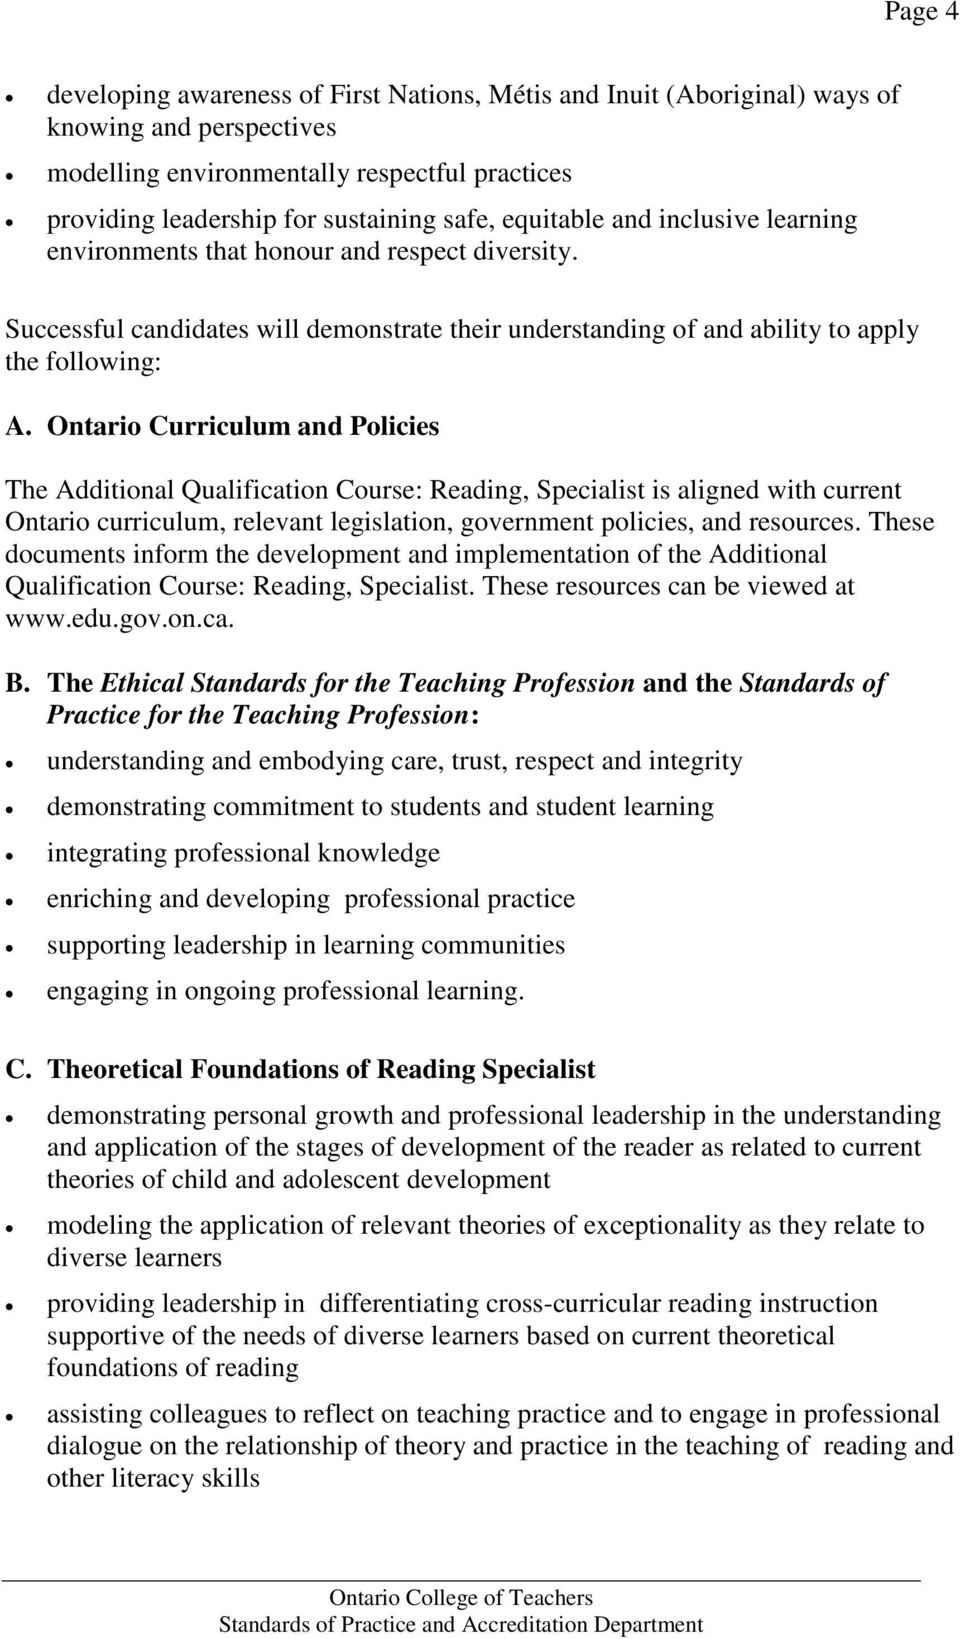 Ontario Curriculum and Policies The Additional Qualification Course: Reading, Specialist is aligned with current Ontario curriculum, relevant legislation, government policies, and resources.